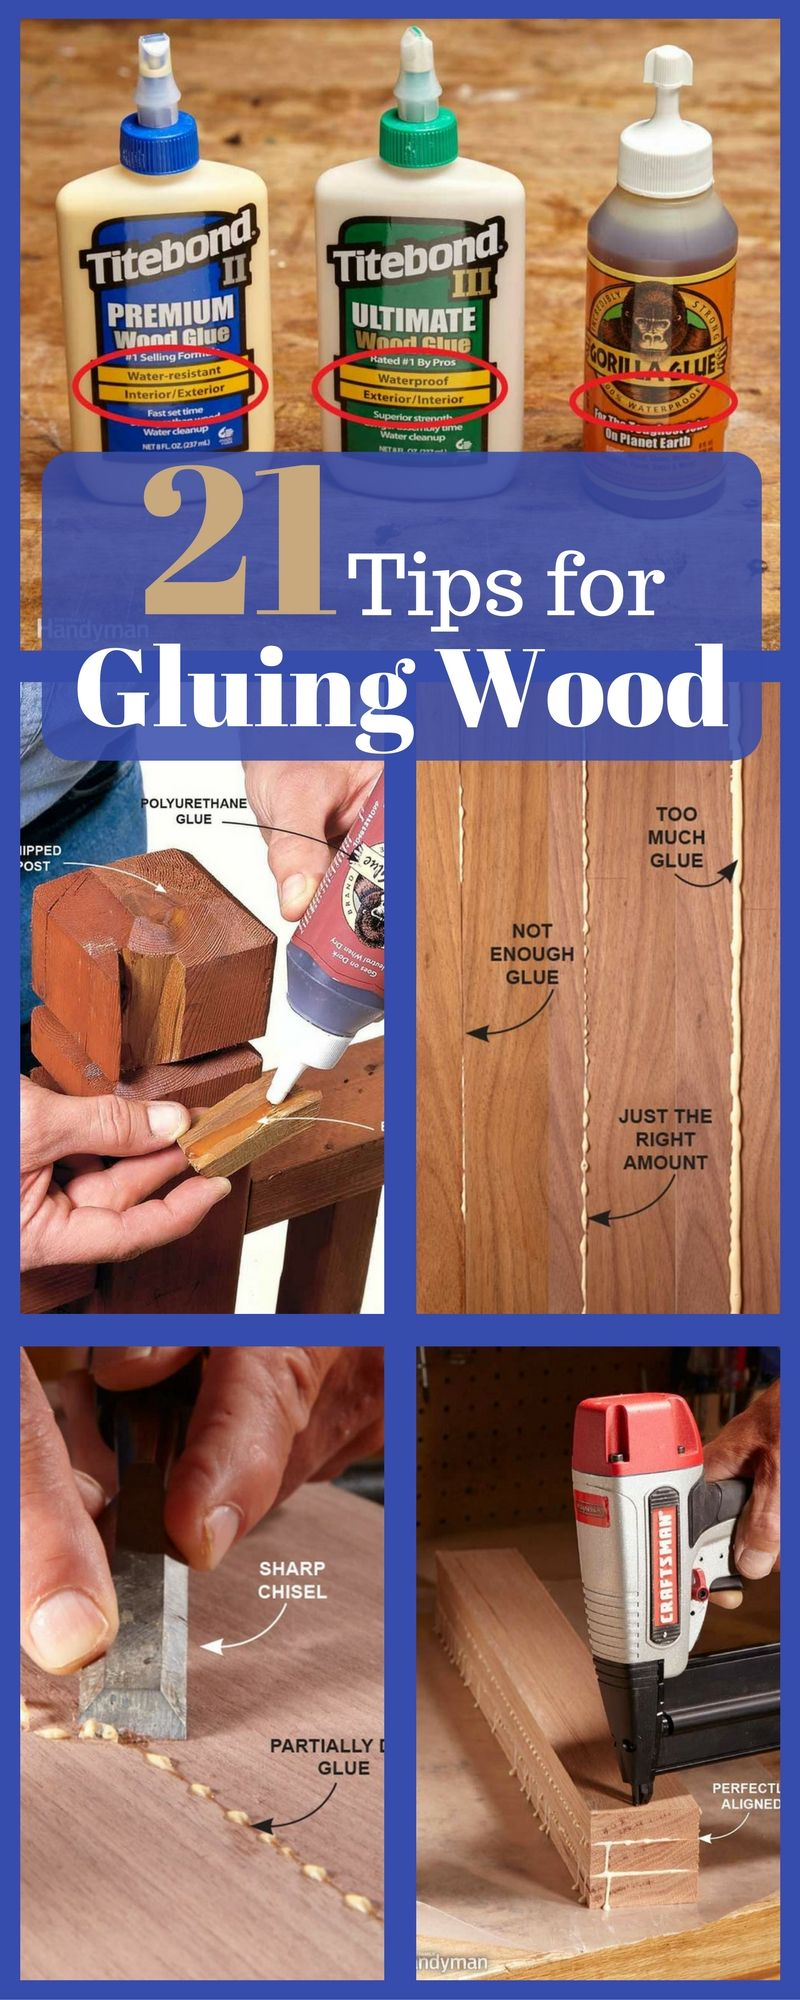 How To Glue Wood Workshop Woodworking Woodworking Projects